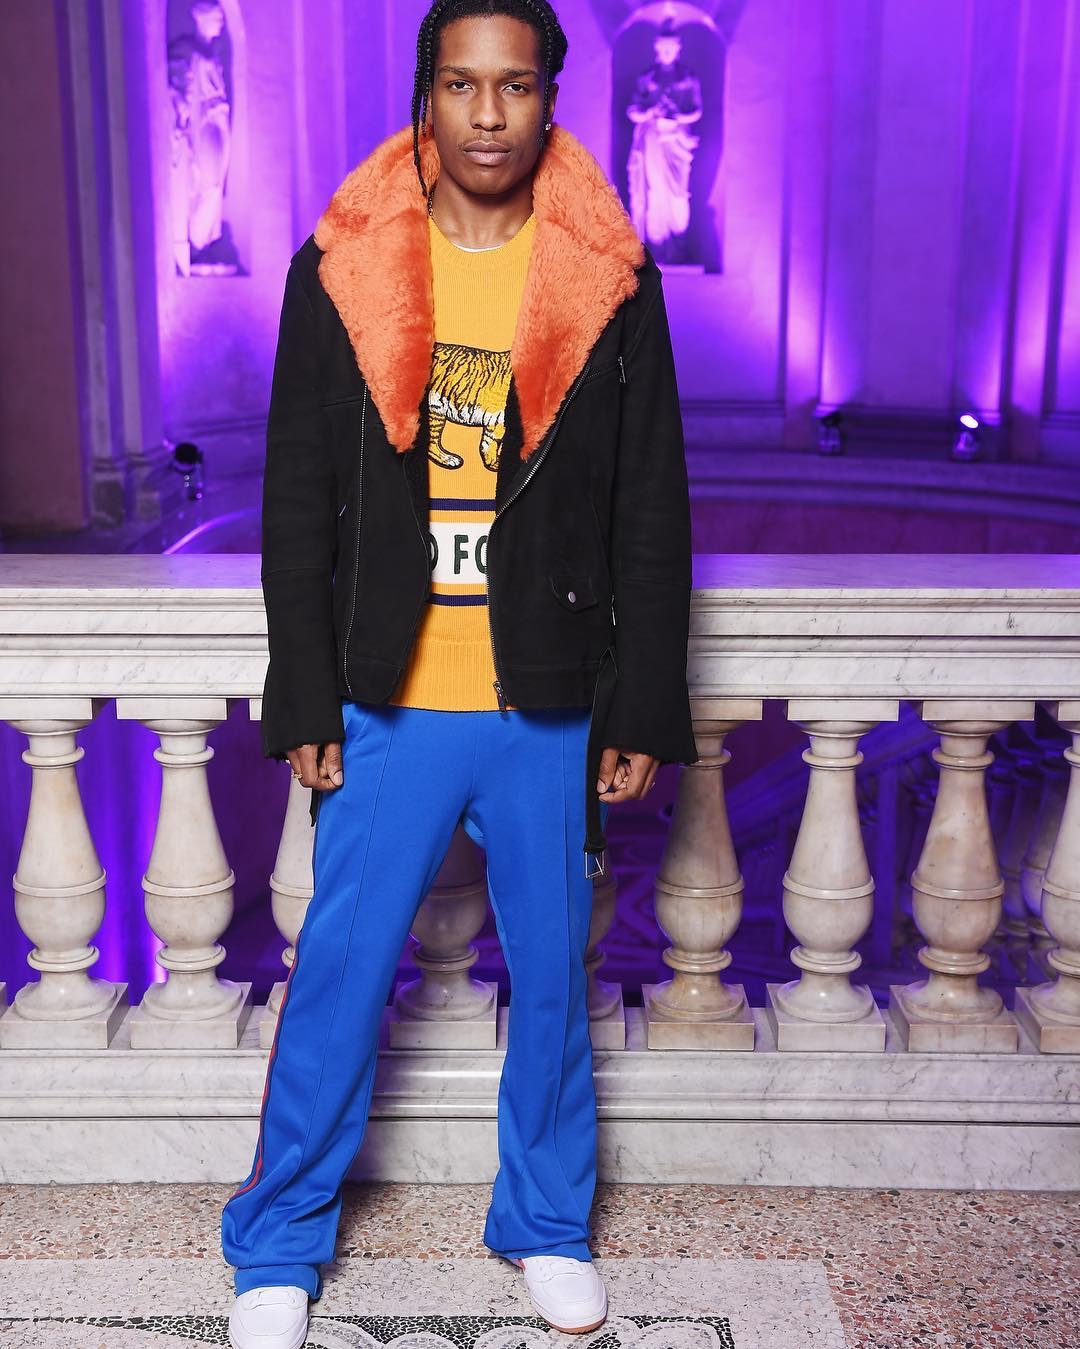 SPOTTED: A$AP Rocky In Midnight Studios And Adidas Sweatpants